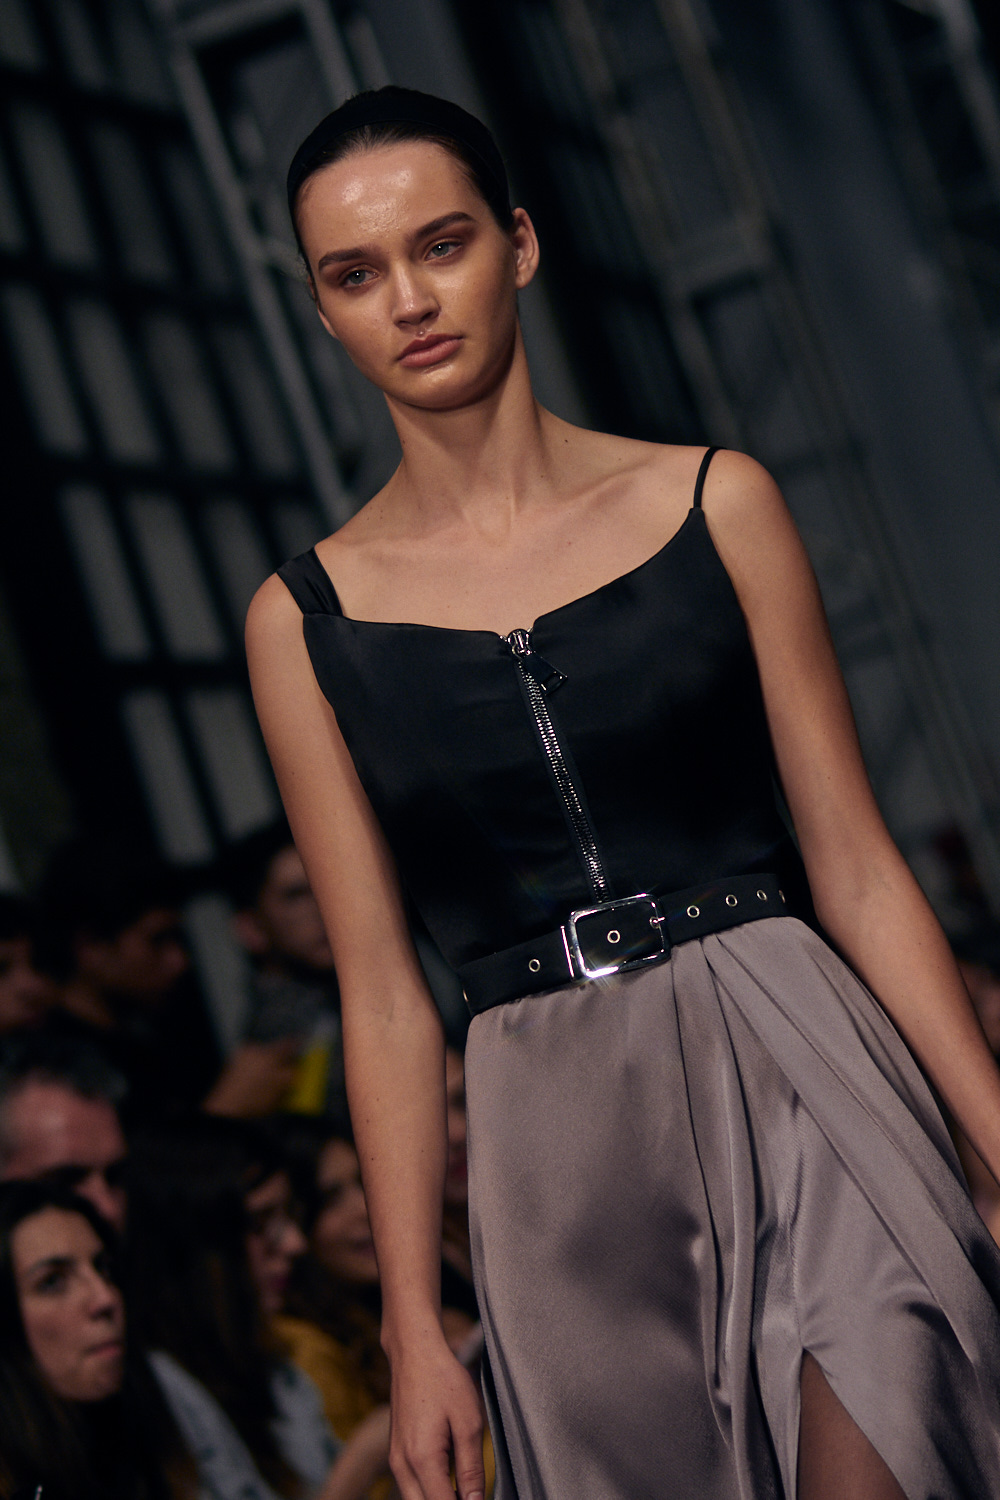 MEXICO CITY, MEXICO - OCTOBER 13: A model walks the runway during the Alfredo Martinez fashion show at Mercedes Benz Fashion Week Mexico 2018 at Ex Convento de San Hipolito on October 13, 2018 in Mexico City, Mexico. (Photo by Leonardo Fernandez)